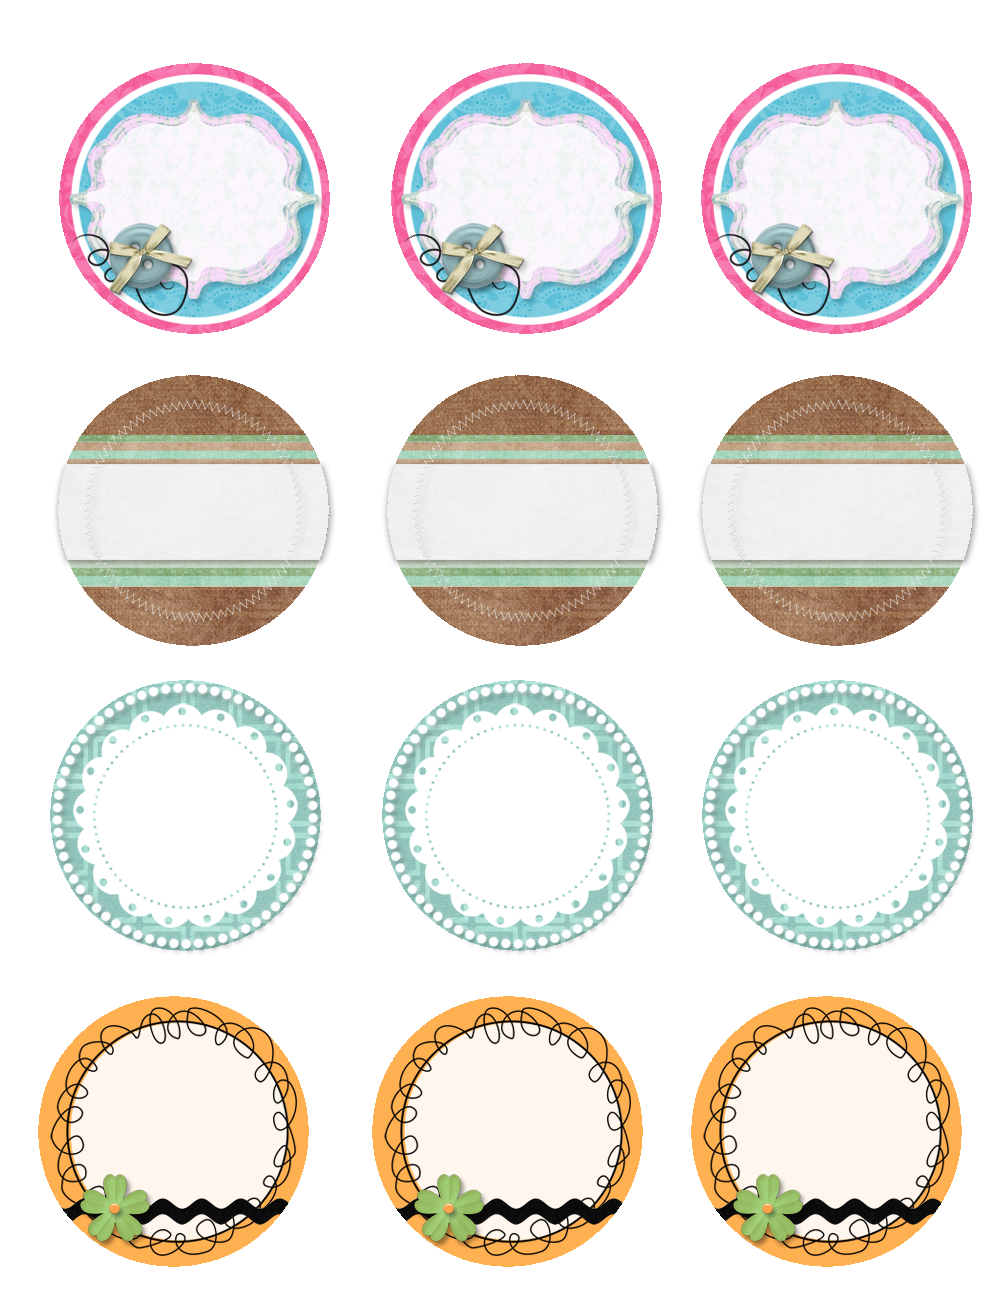 56 Cute Mason Jar Labels | Kittybabylove - Free Printable Mason Jar Labels